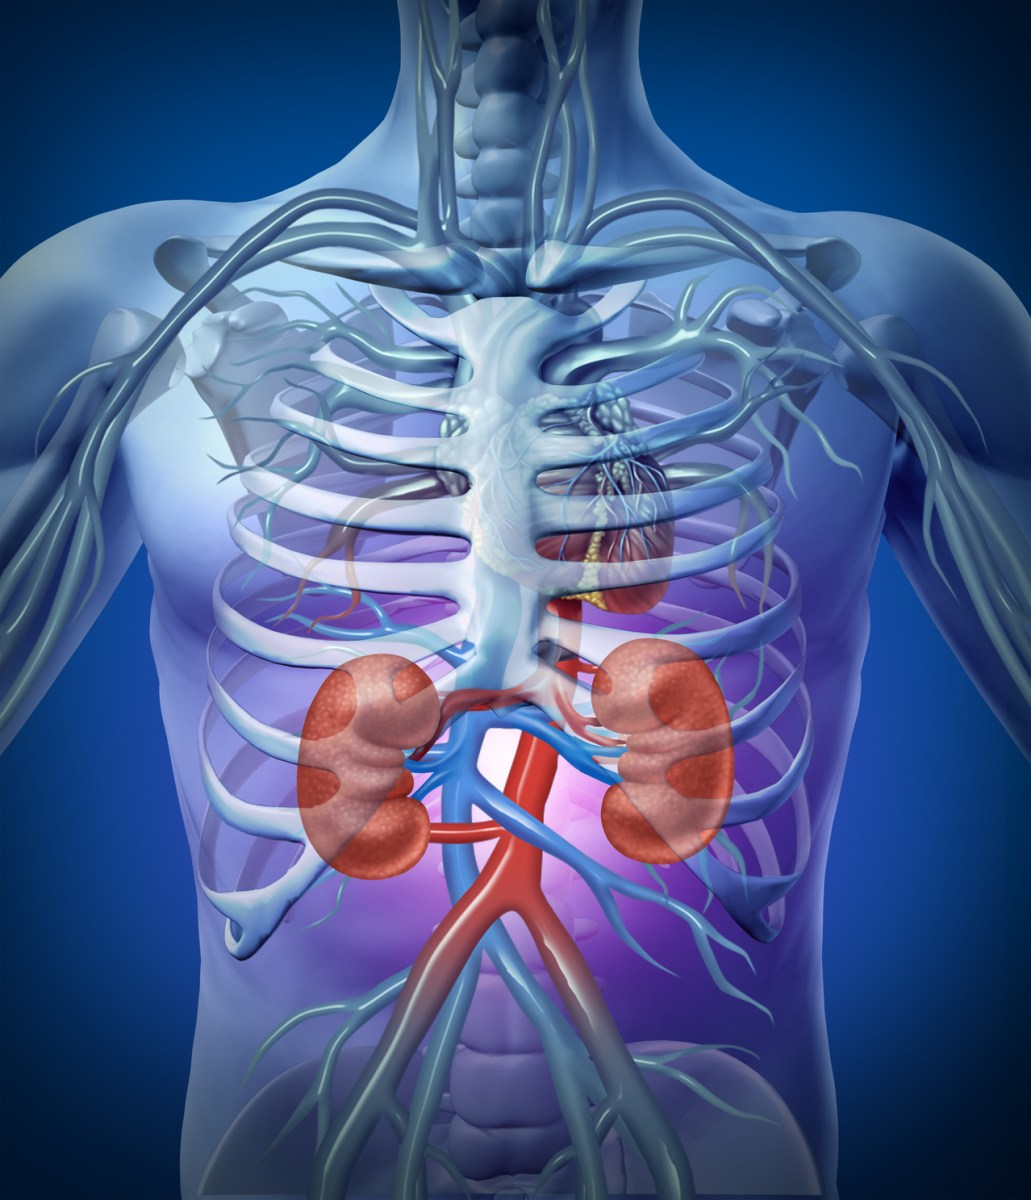 7 Habits that Damage the Kidney